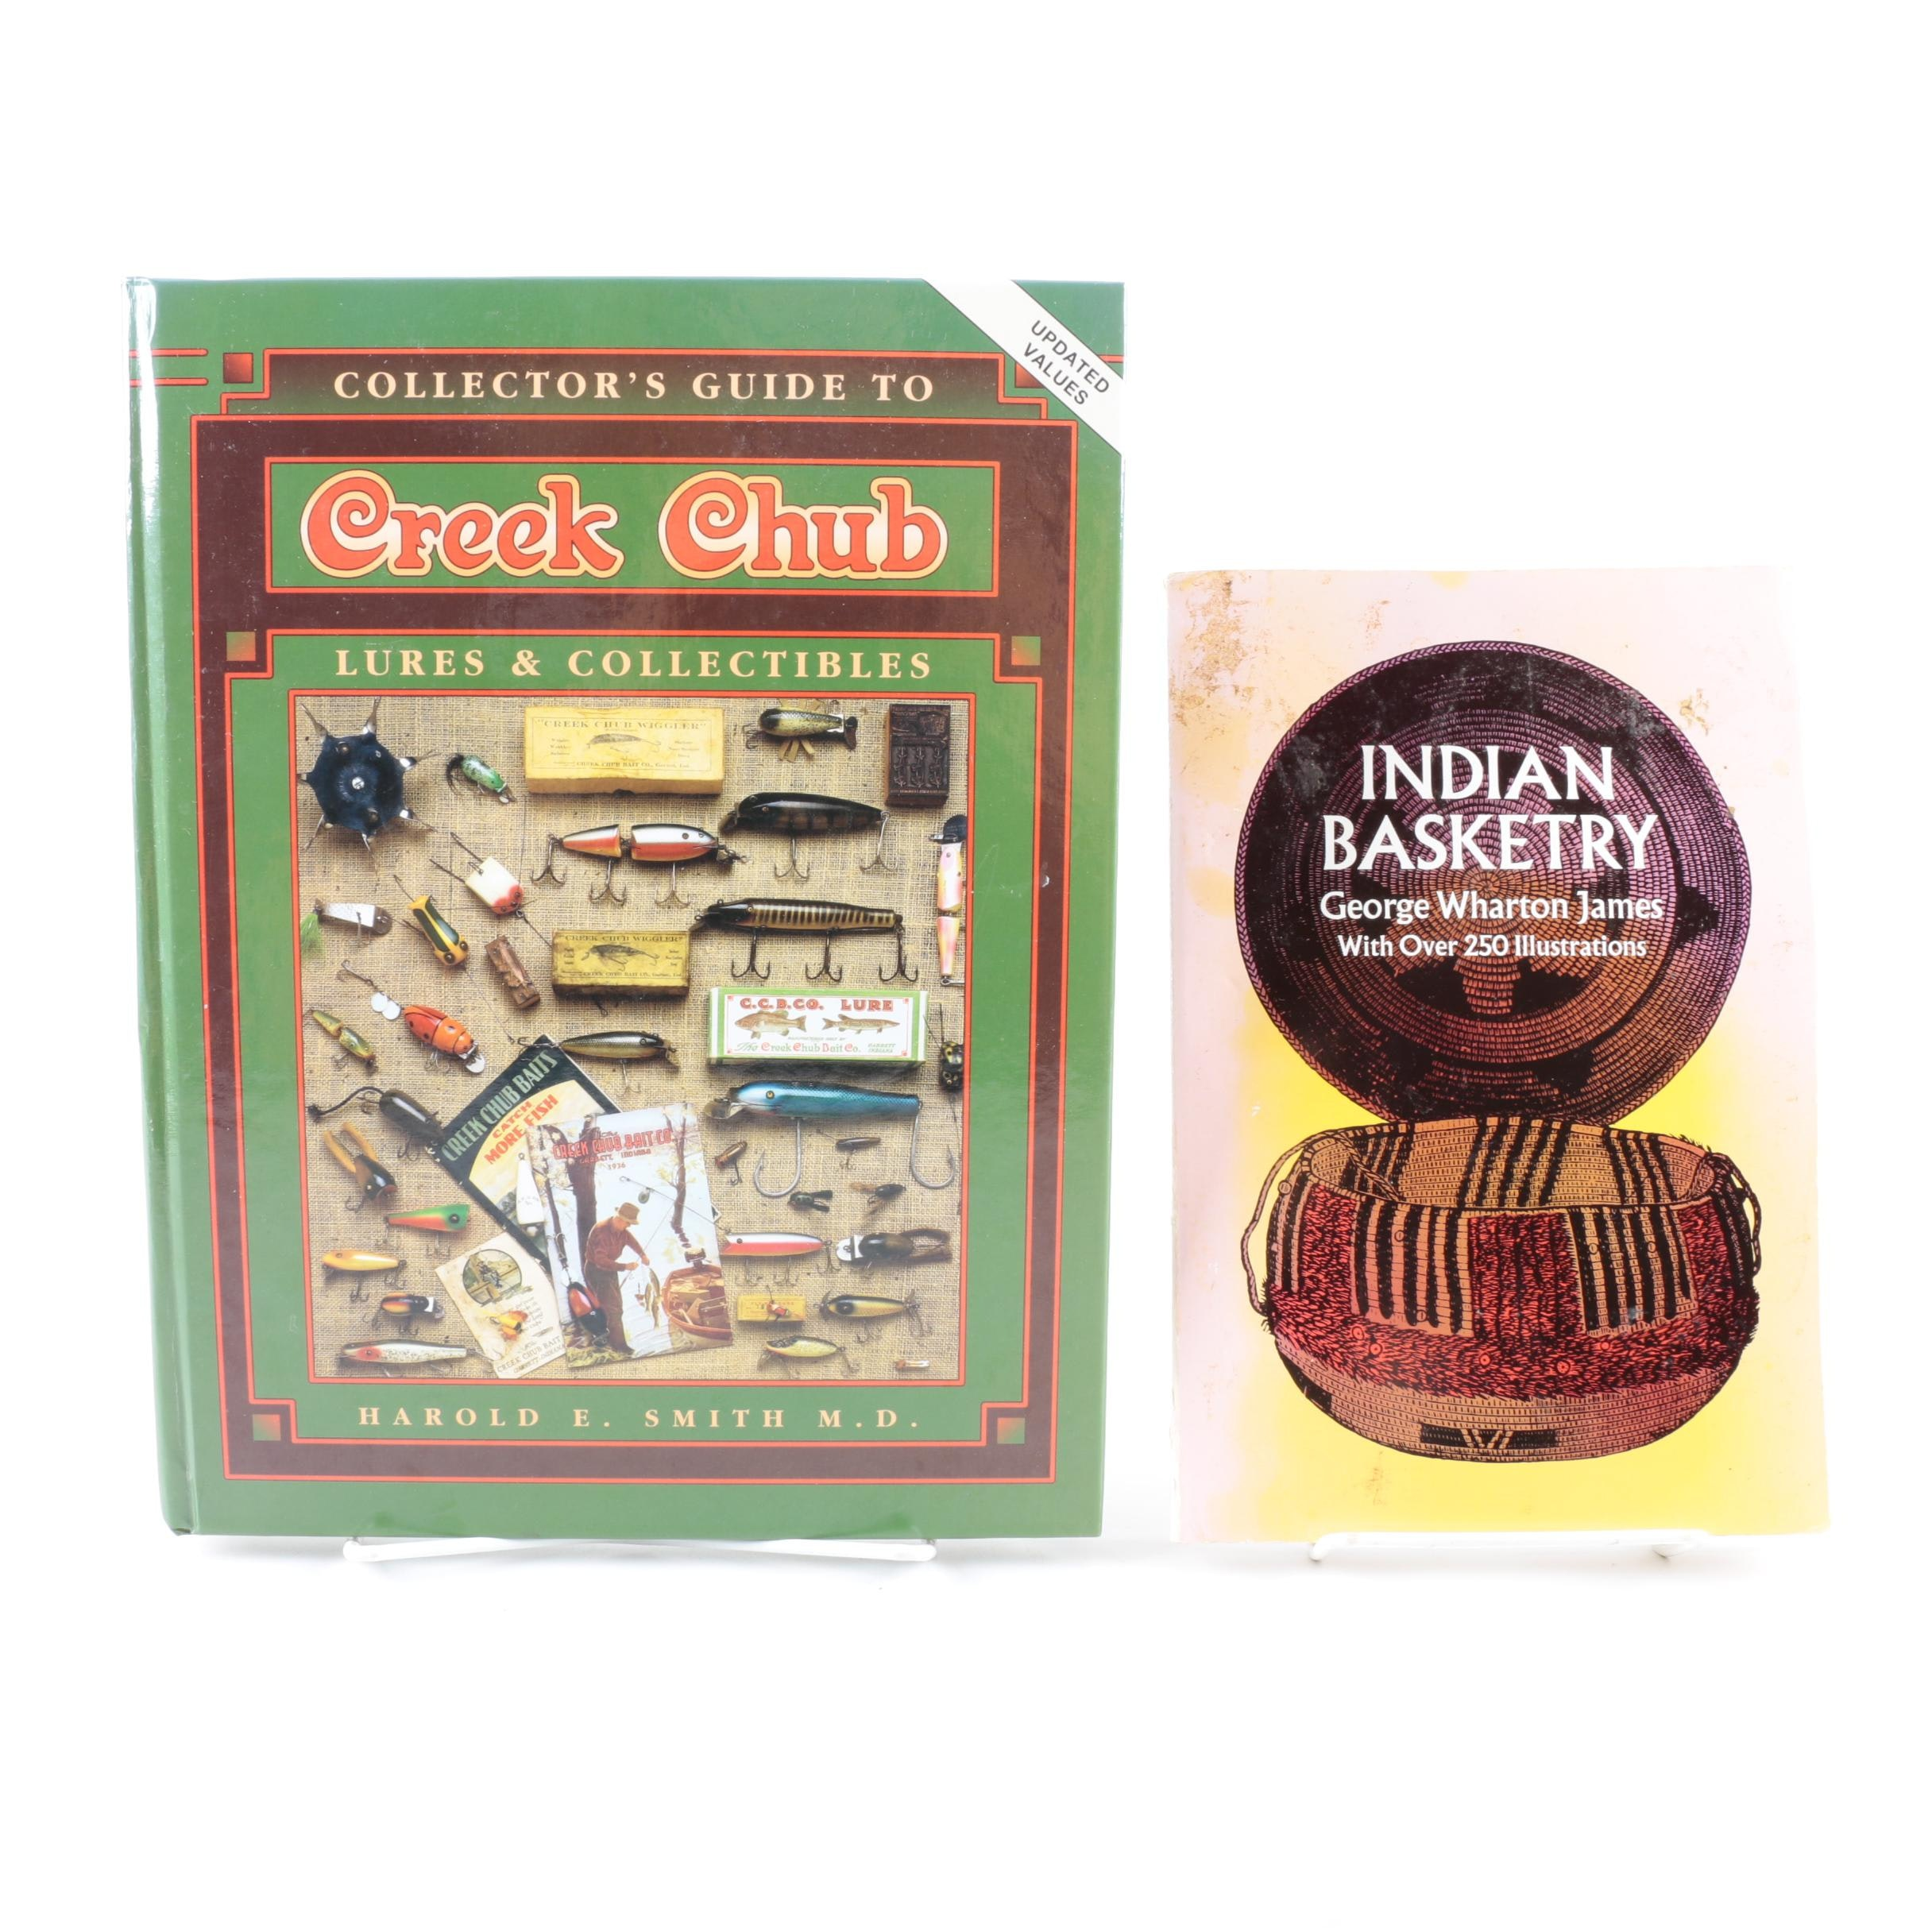 Pair of Books on Fishing and Basketry